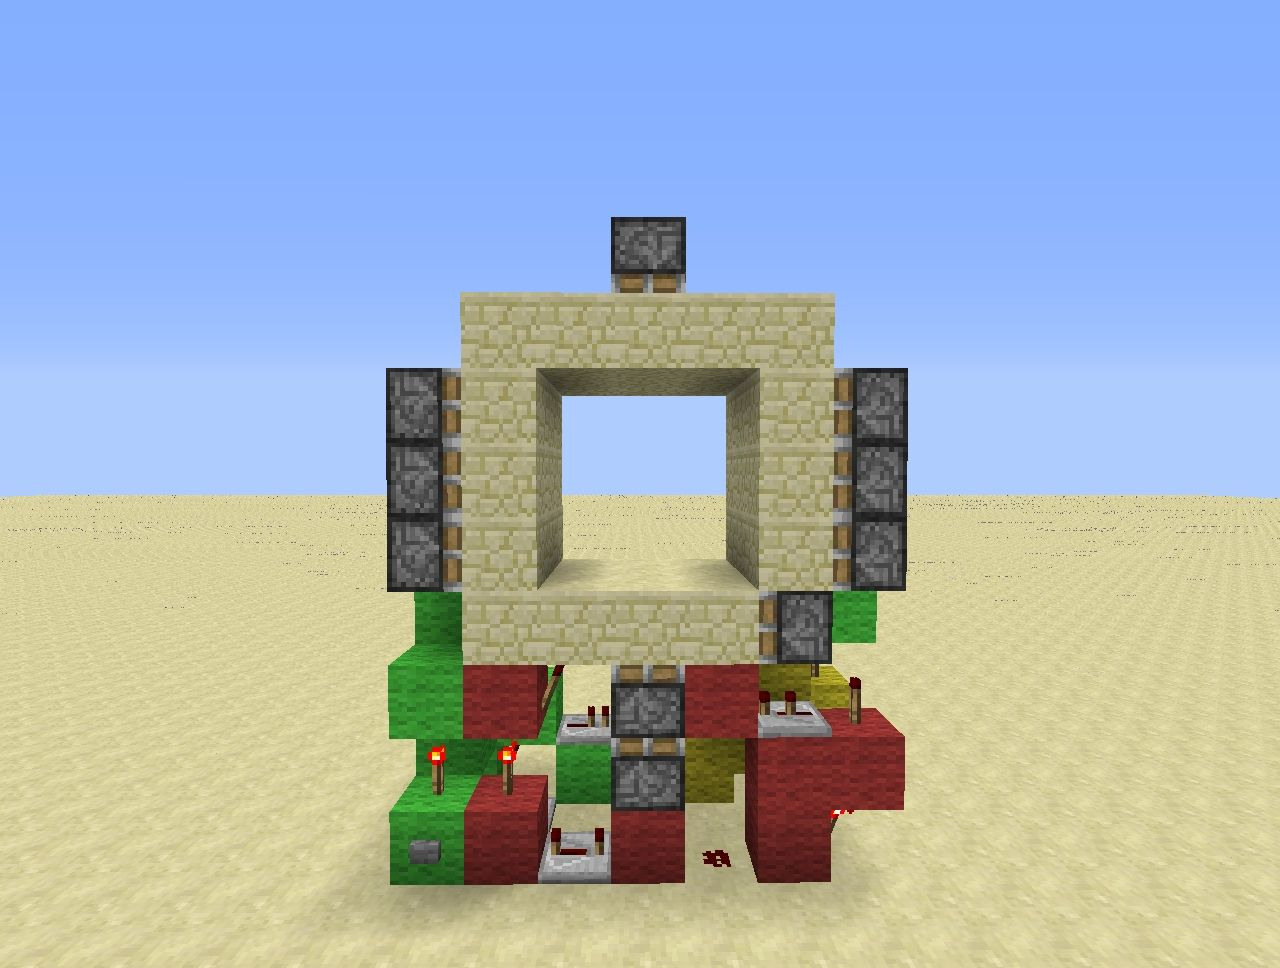 Minecraft super compact 3x3 piston door tutorial 3x7 for Porte 3x3 minecraft